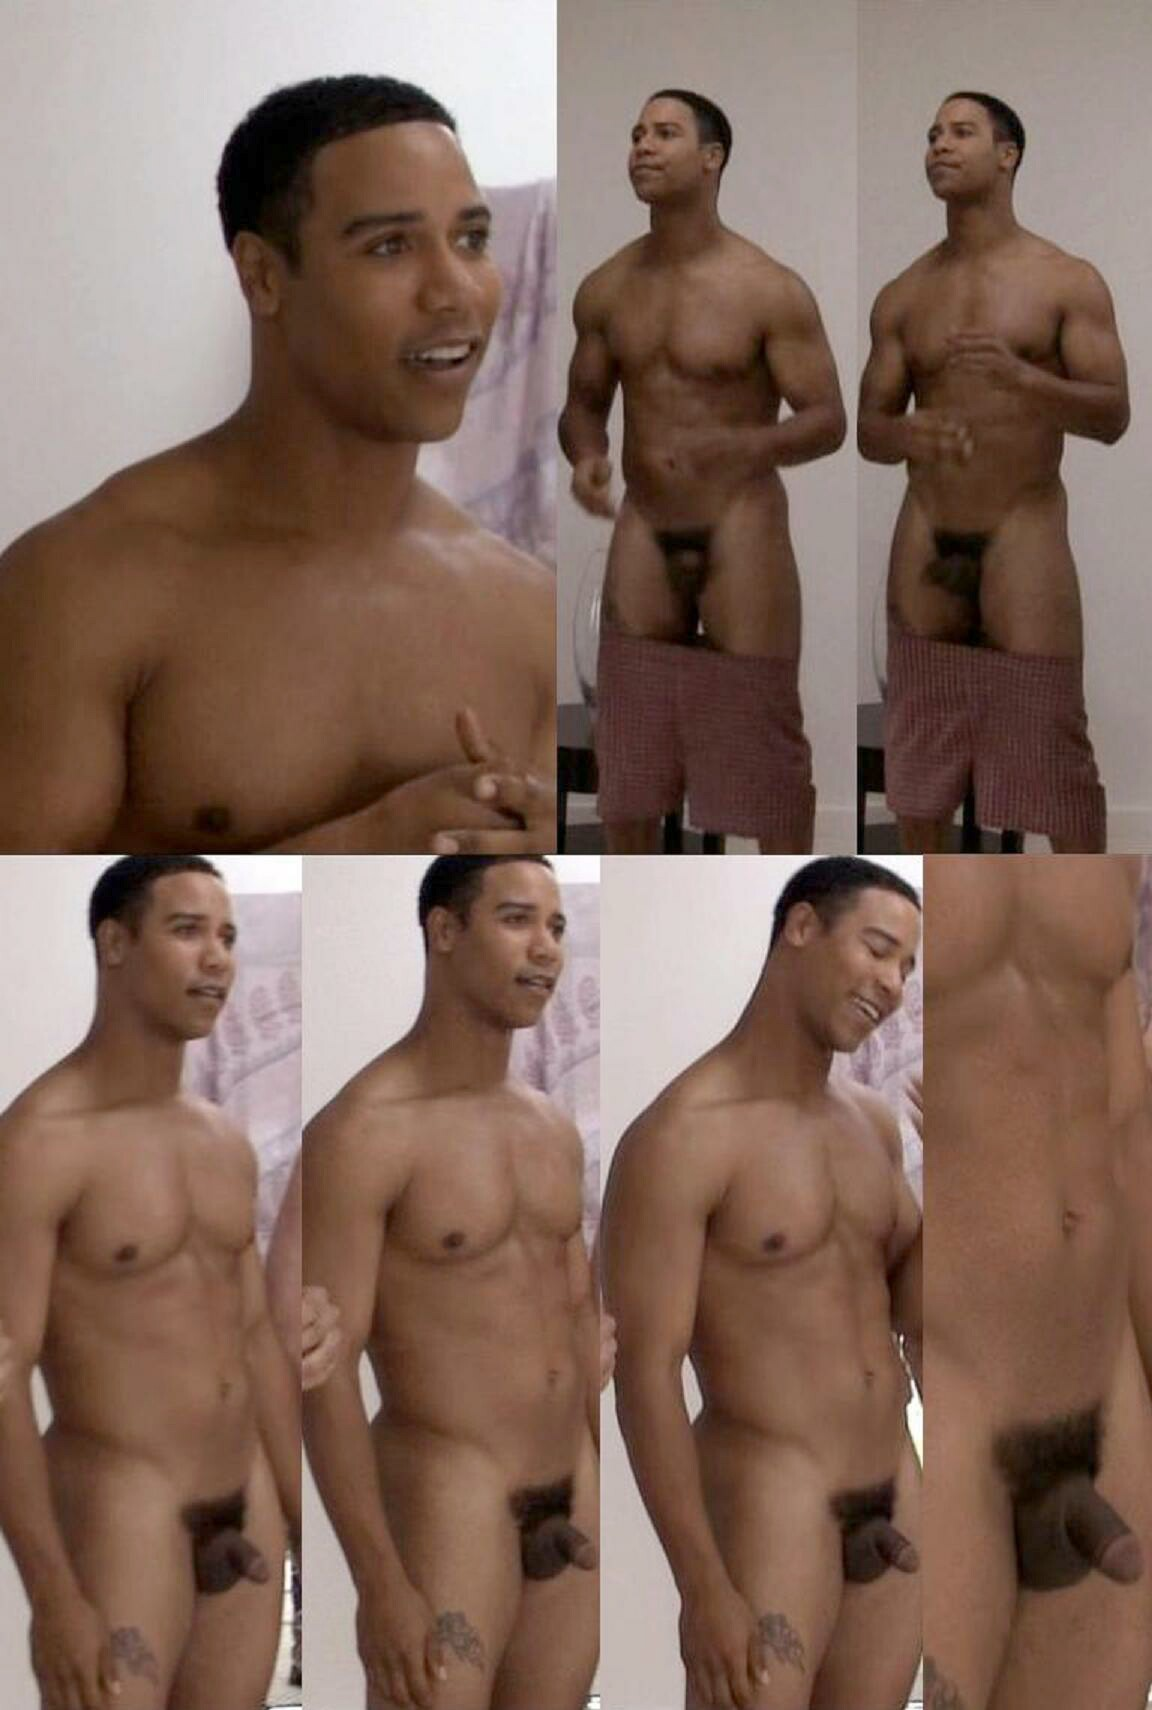 Black male celibrities naked